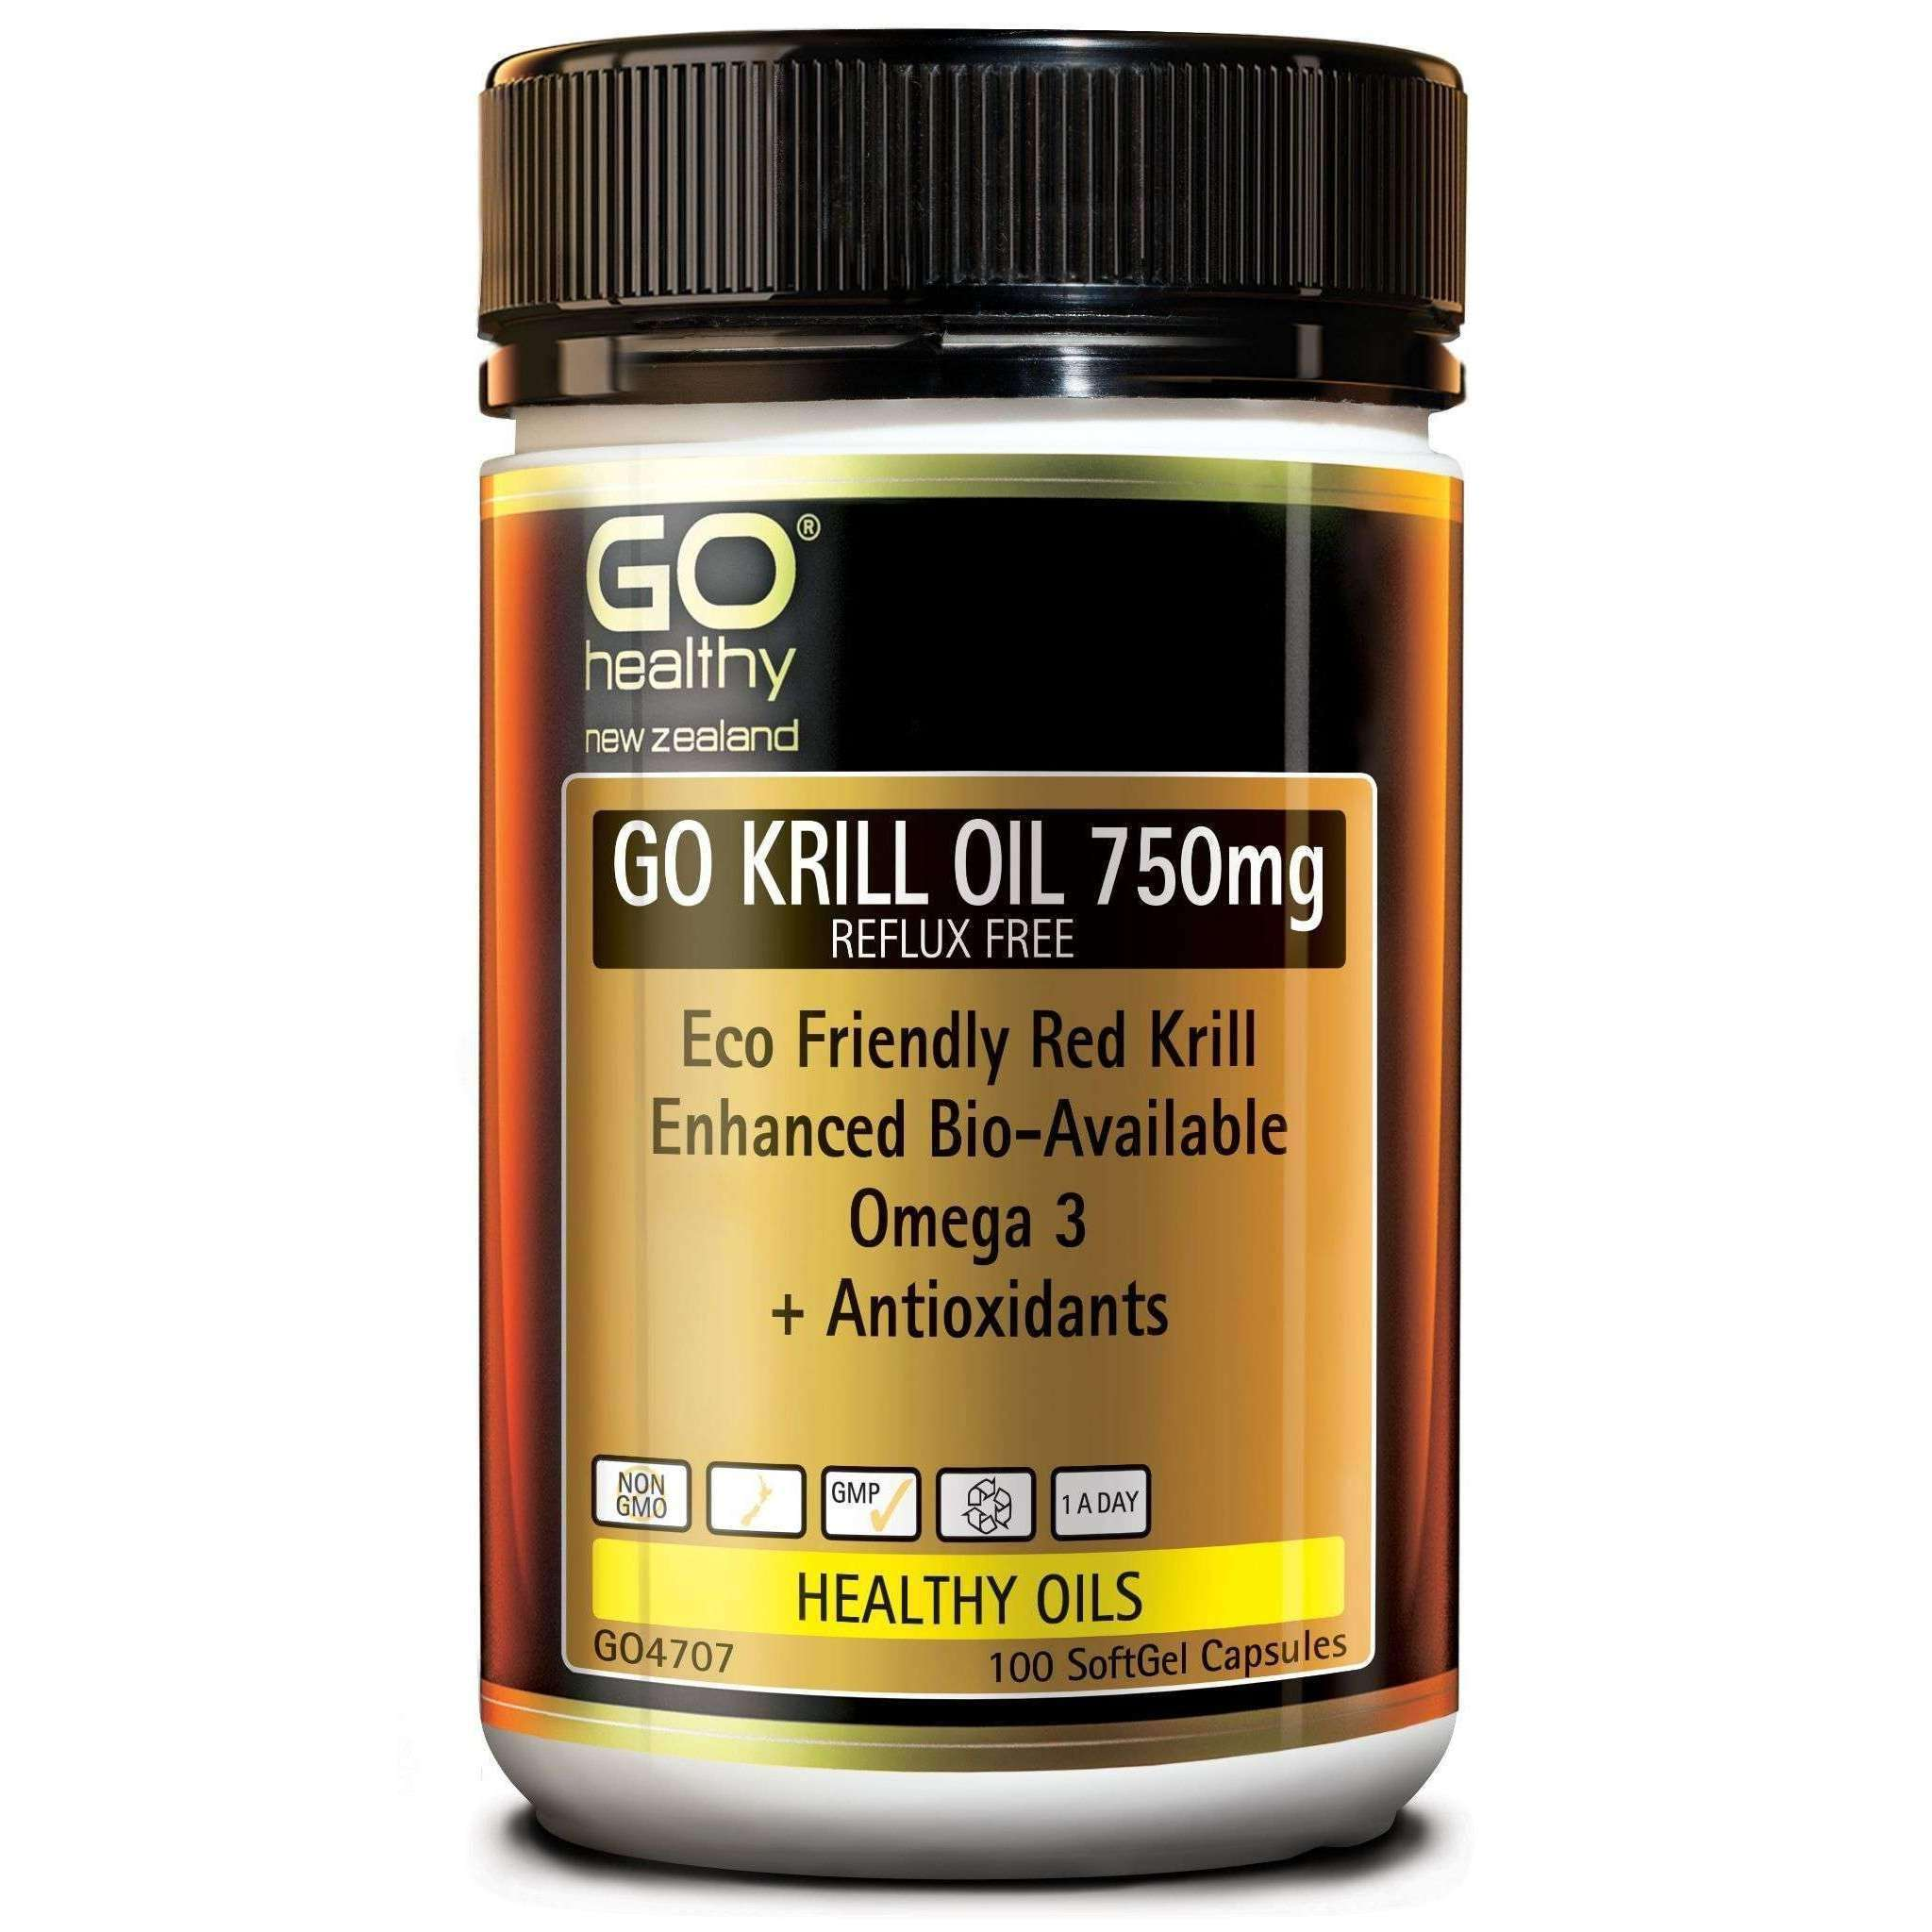 Go Healthy Go Krill Oil 750mg